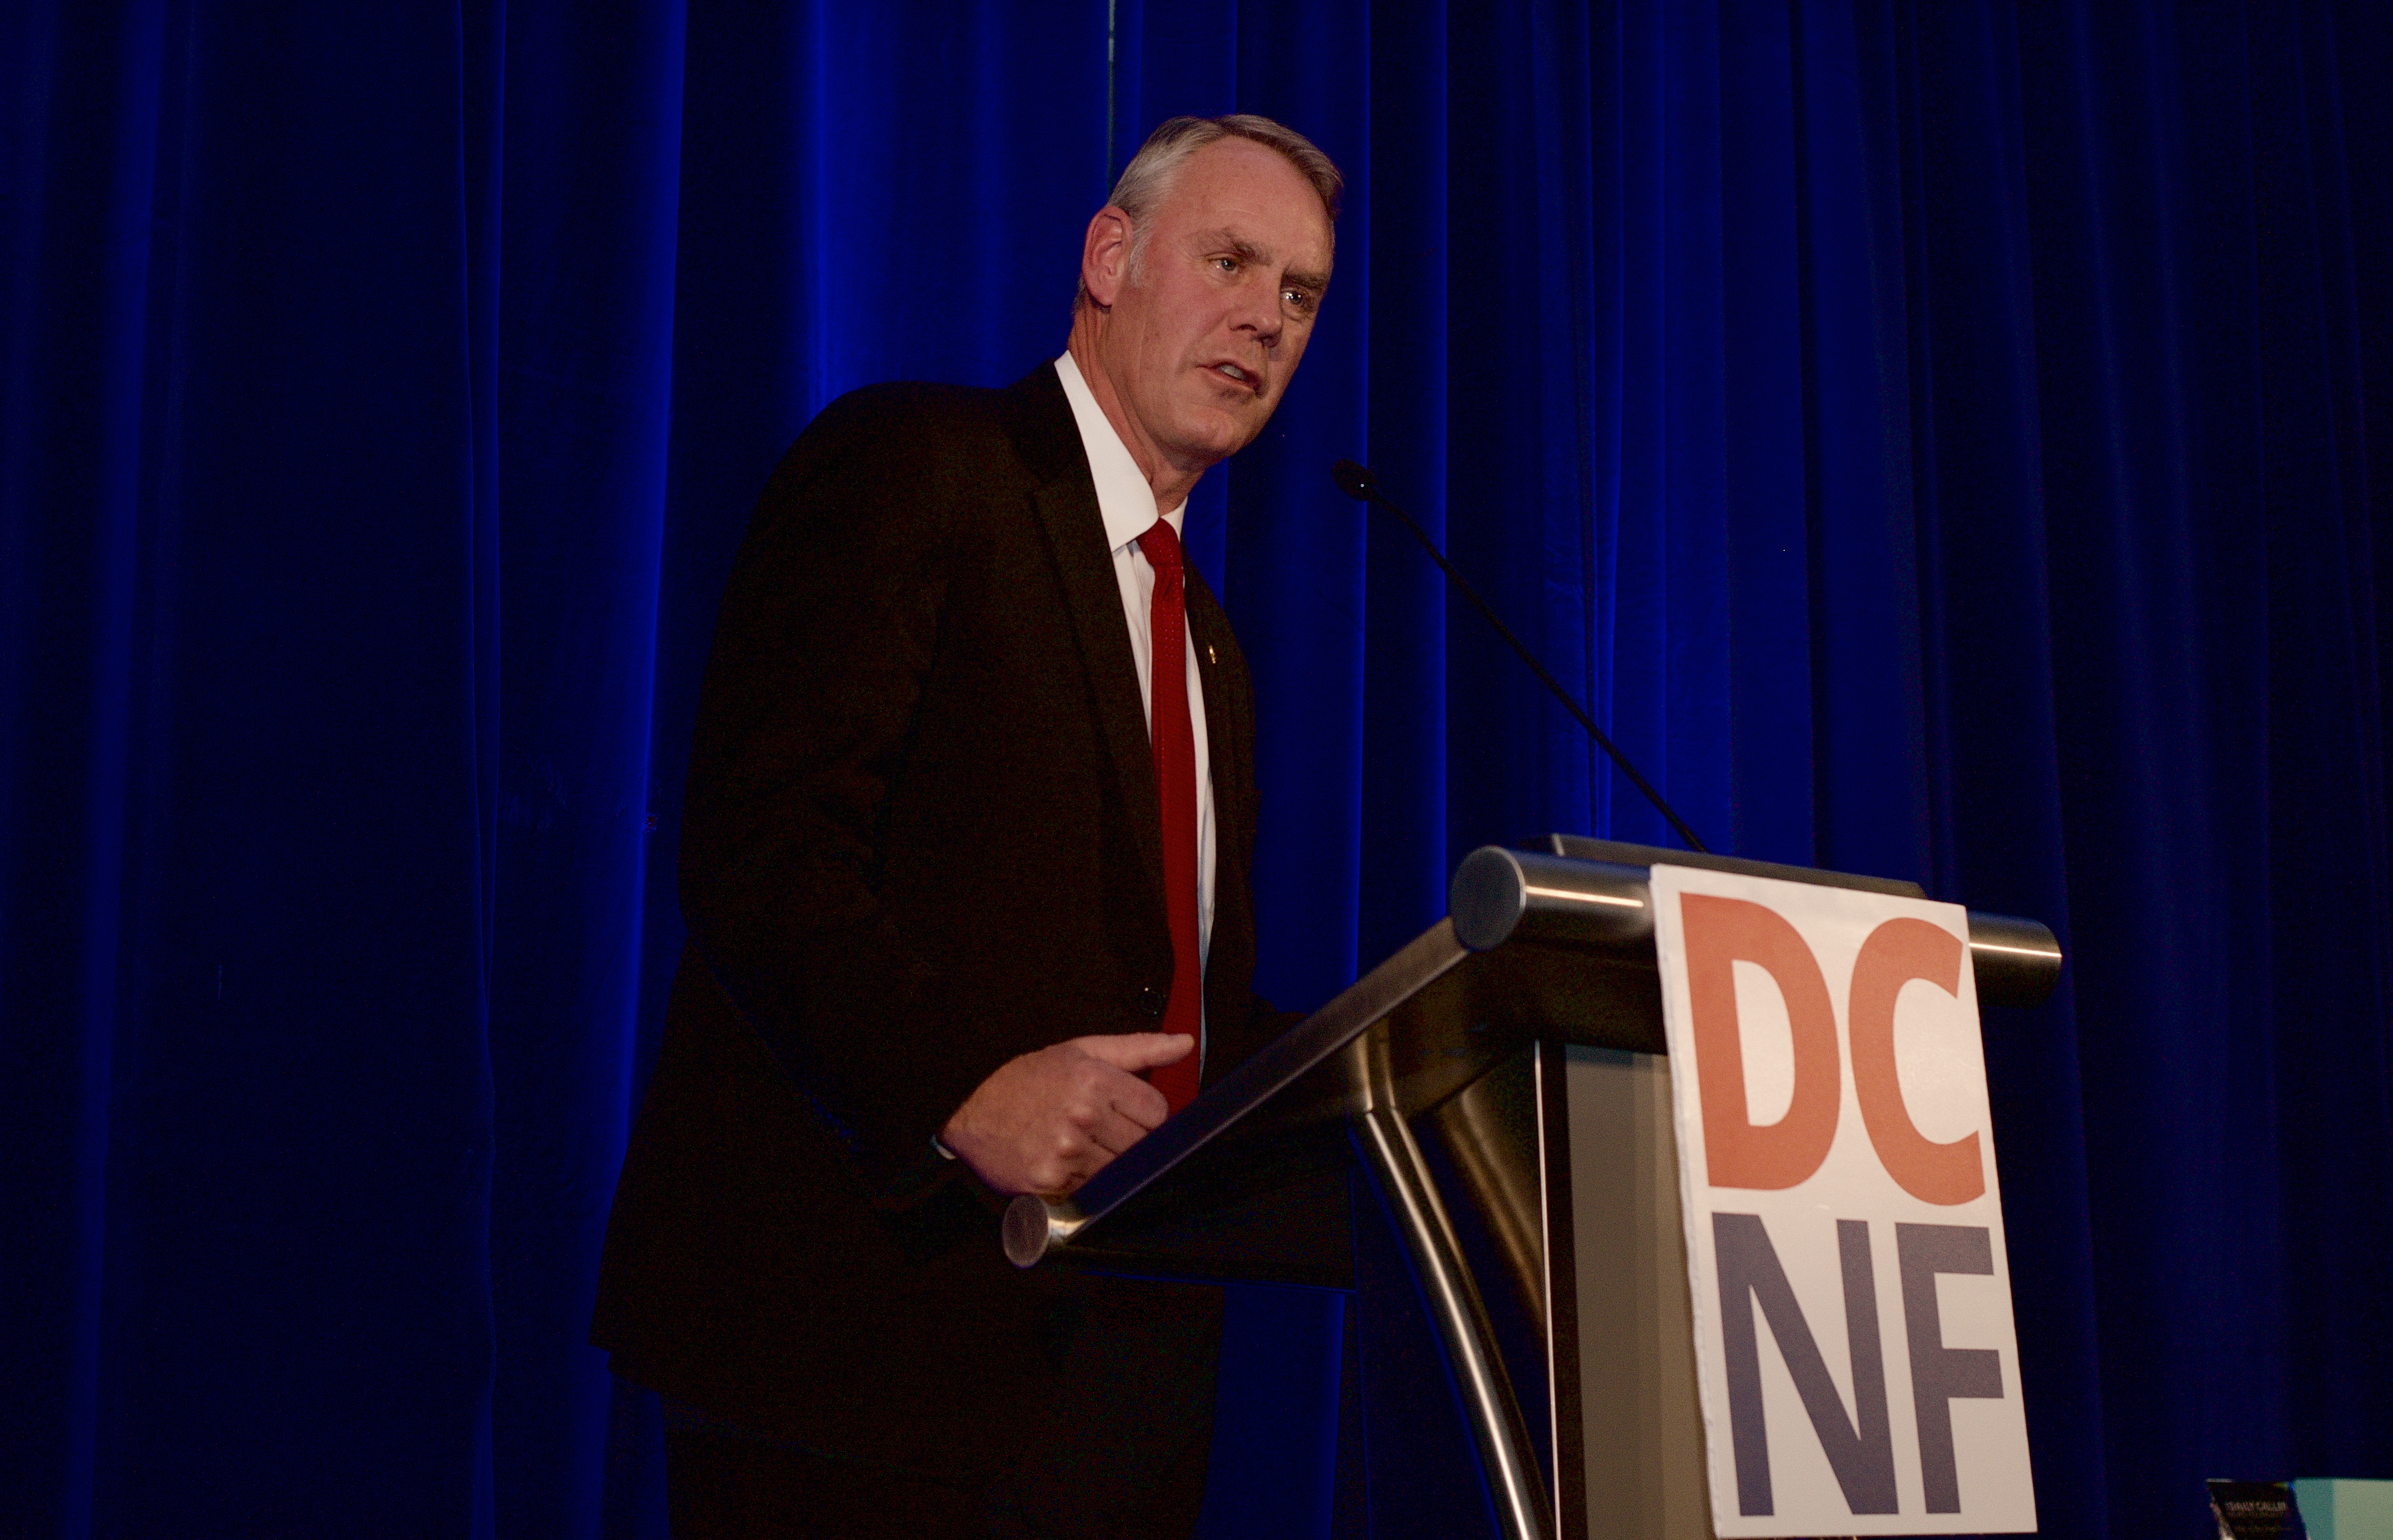 Interior Secretary Ryan Zinke at the inaugural Daily Caller News Foundation gala. (Grae Stafford/Daily Caller News Foundation)